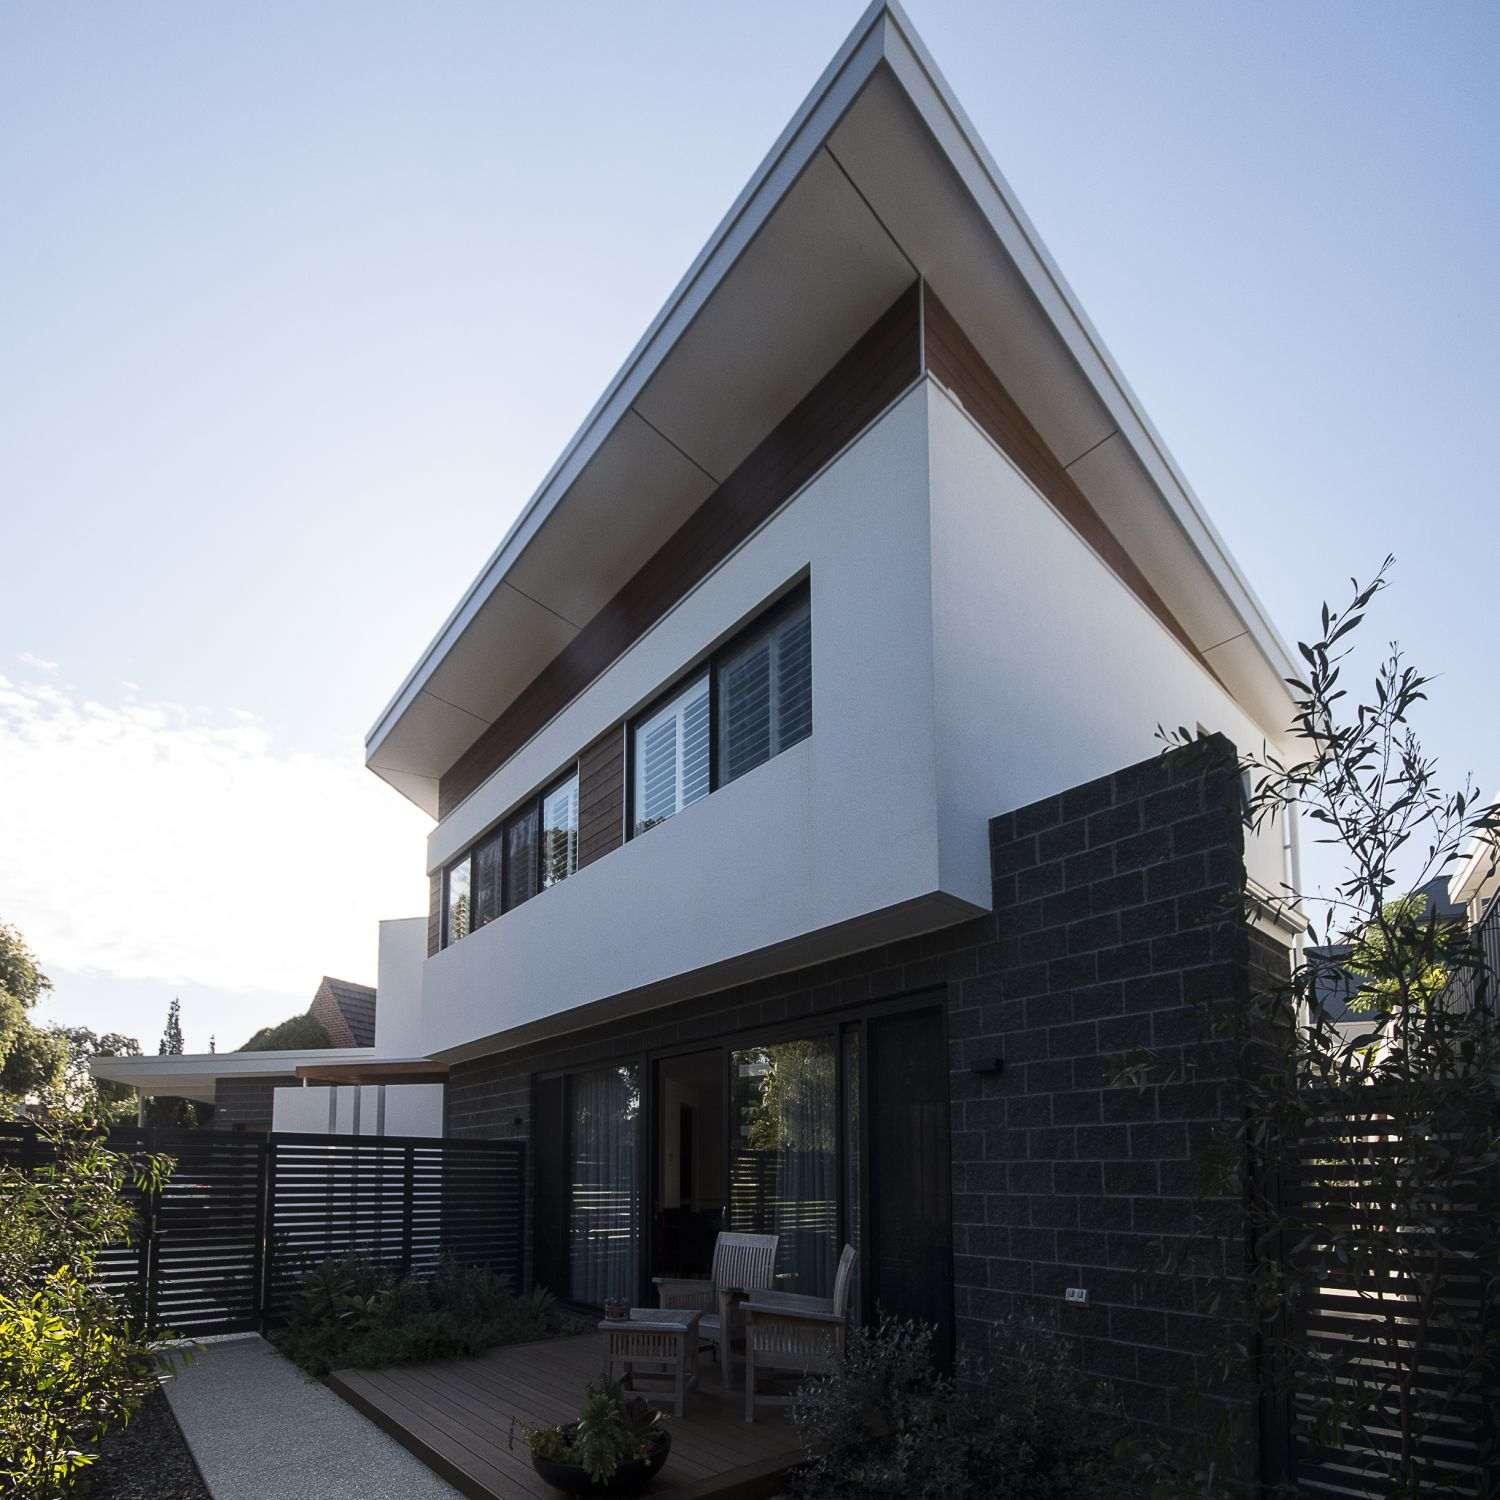 WEMBLEY DOWNS 'WEDGE' HOUSE